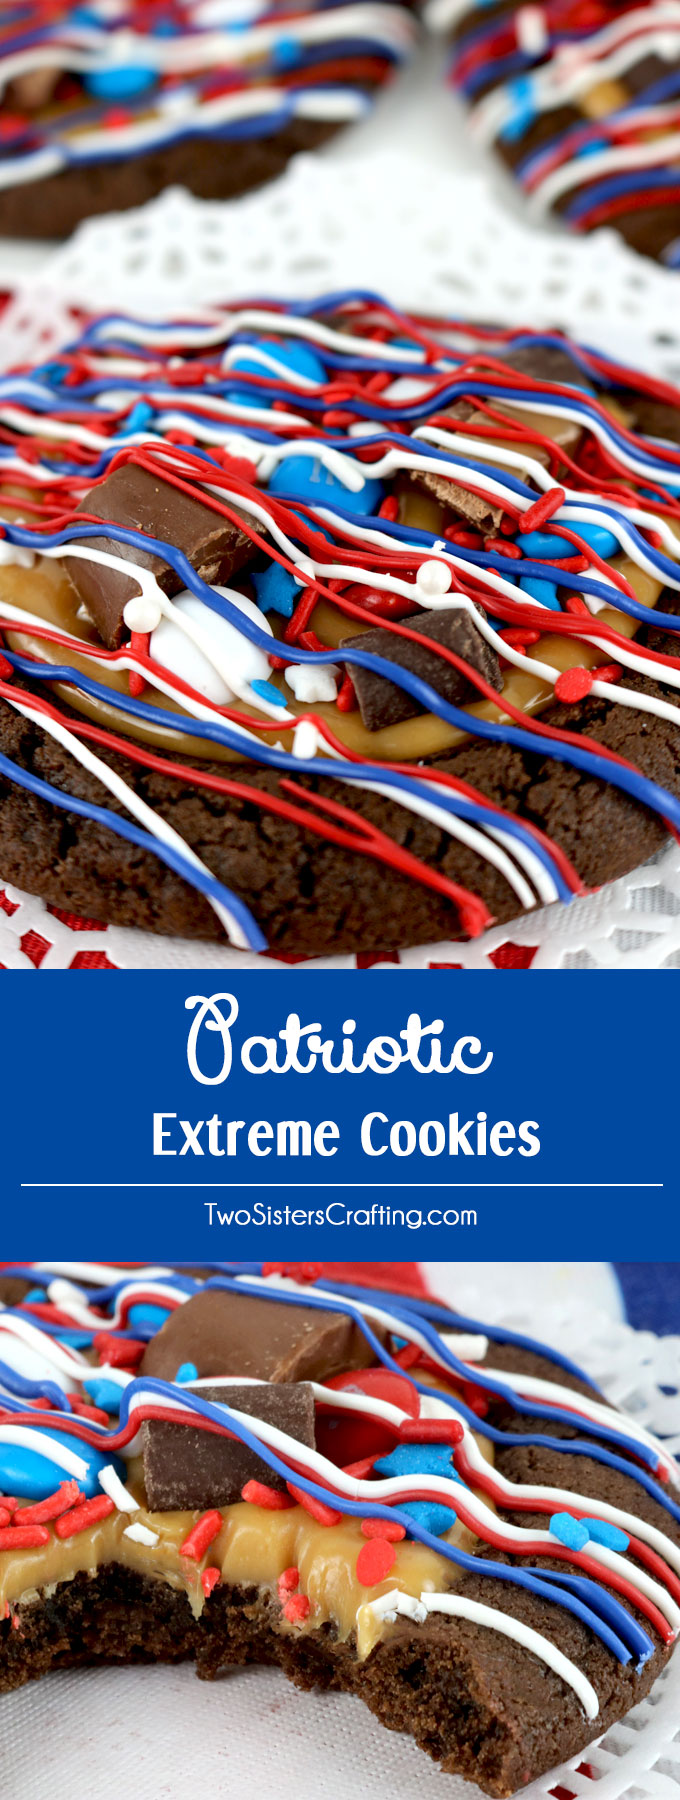 Patriotic Extreme Cookies - a fun over the top 4th of July cookie featuring chocolate cookies, caramel, red white and blue candy mix-ins and sprinkles. This Fourth of July dessert will wow the guests at your 4th of July party or Memorial Day Barbecue. Pin this 4th of July treat for later and follow us for more great 4th of July Food ideas.